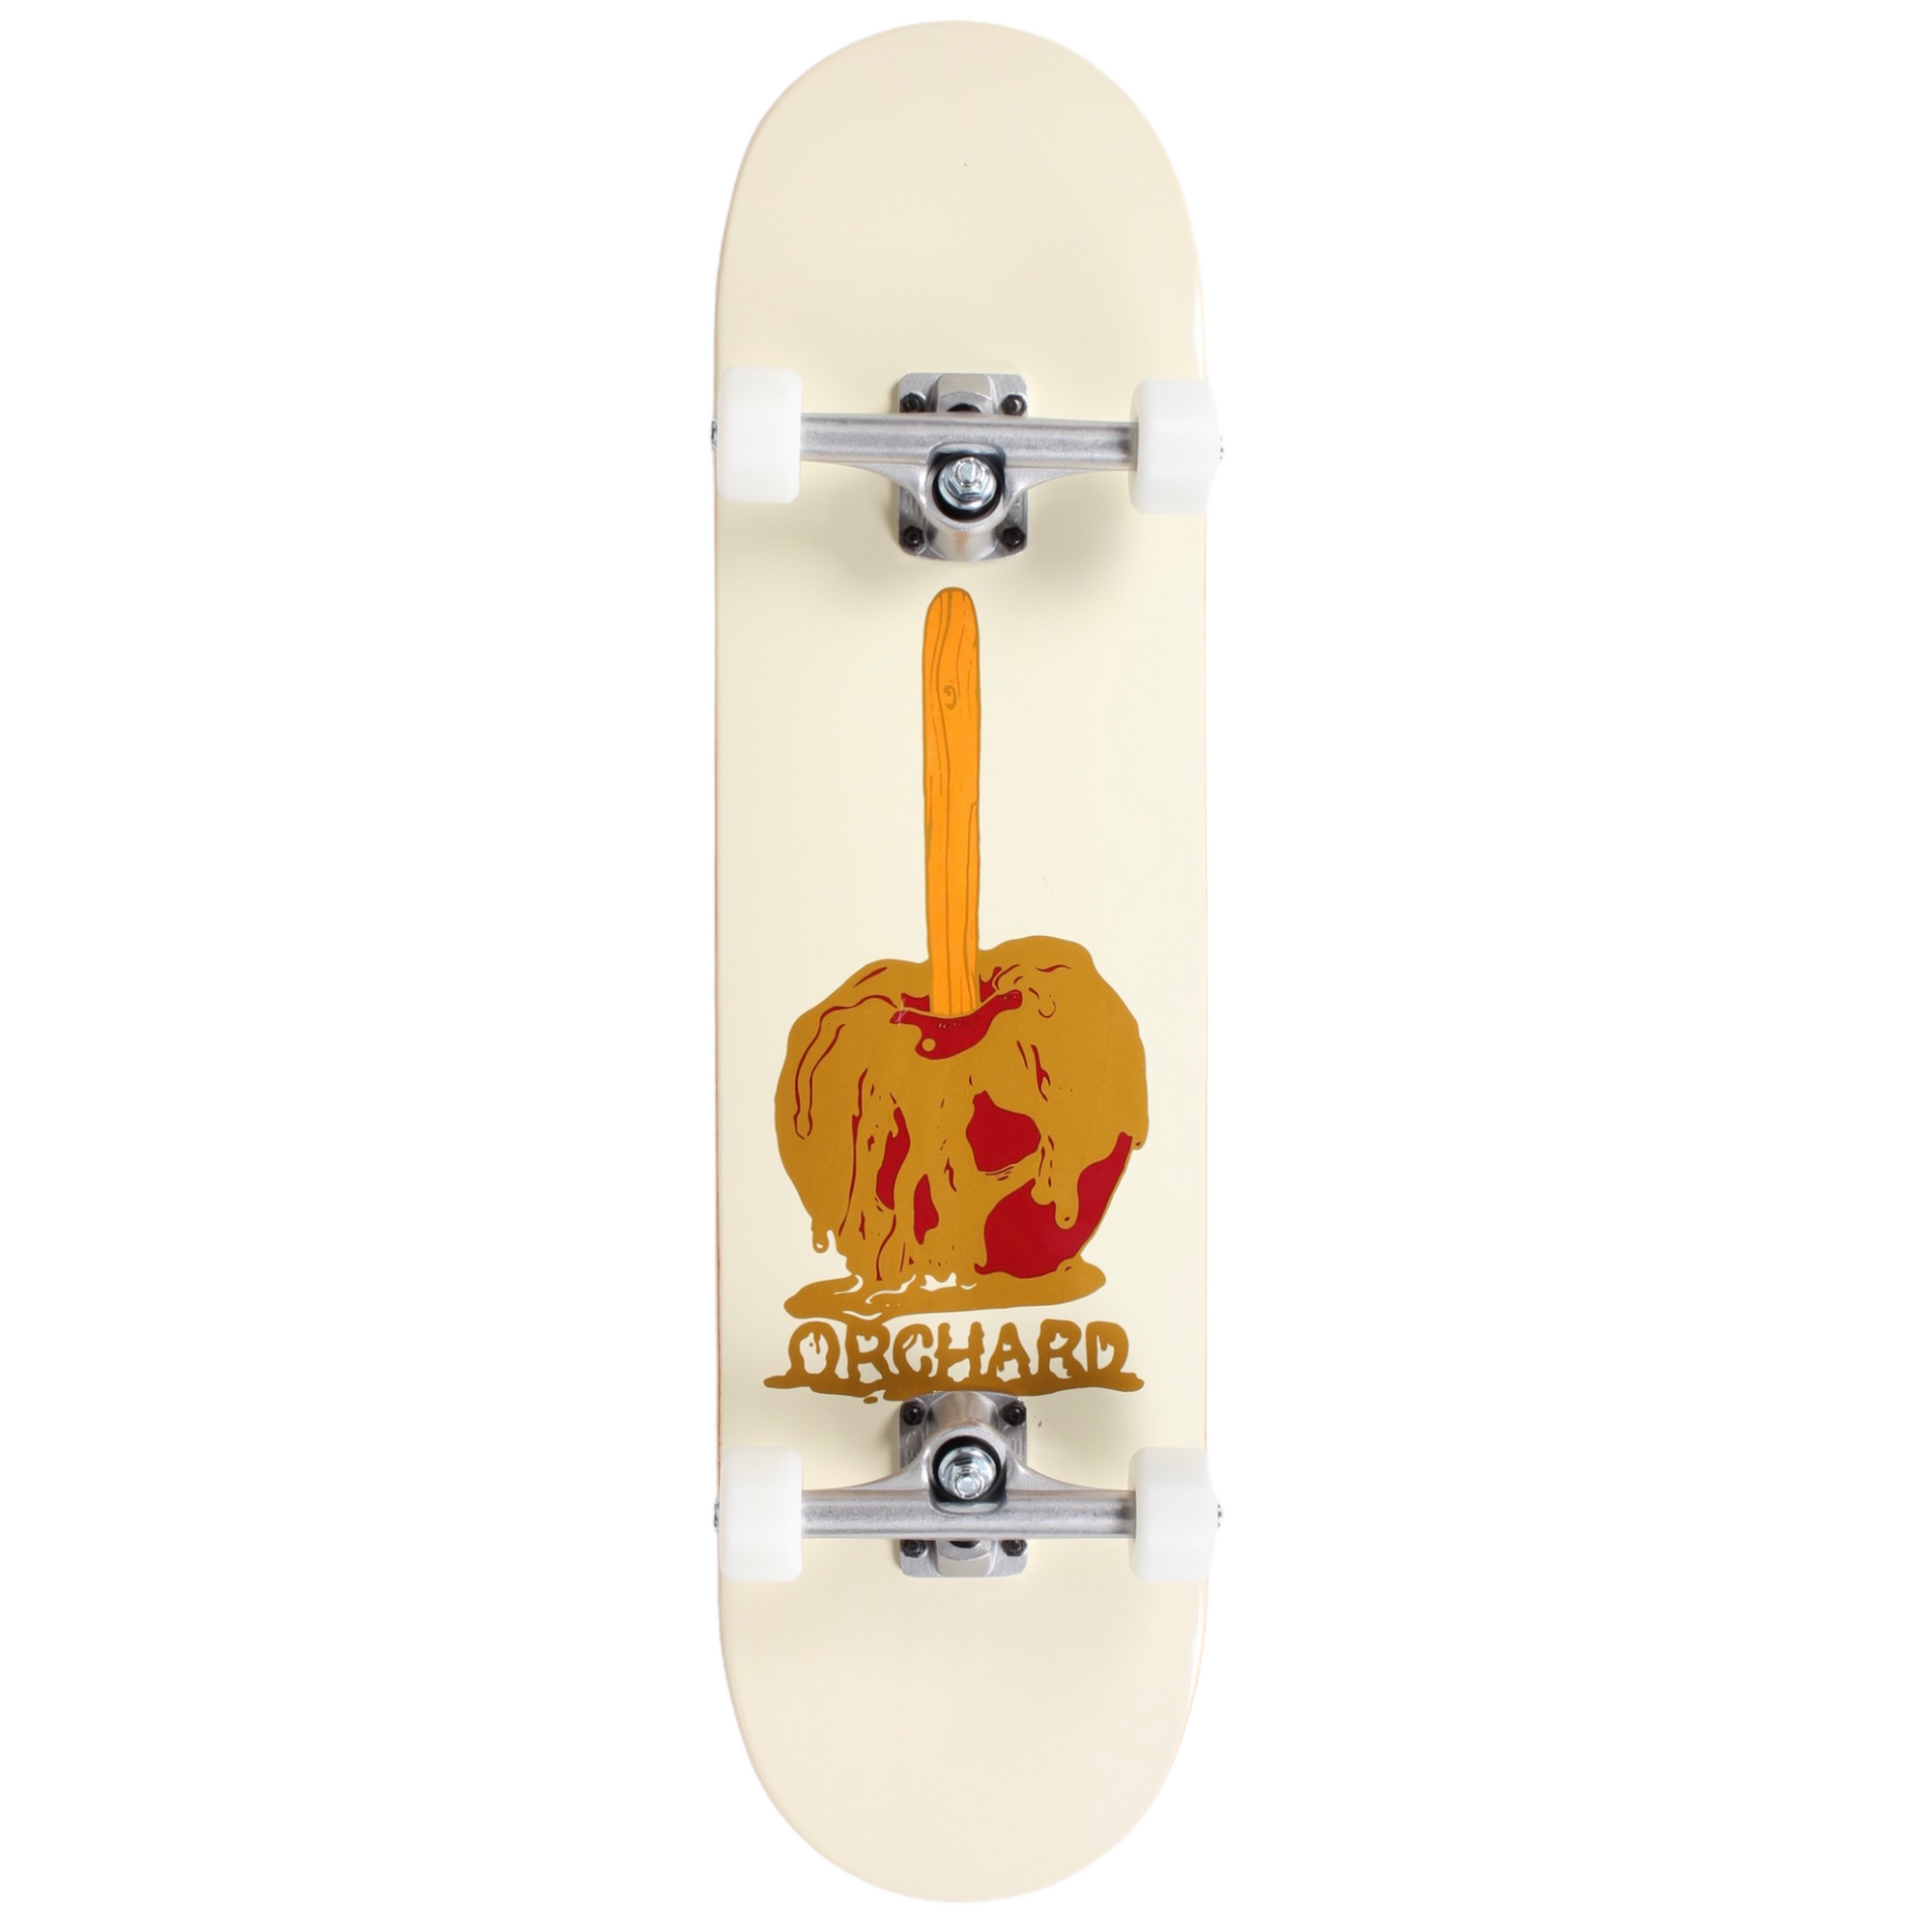 Orchard Candy Apple Hybrid Complete Skateboard 8.3 (With Free Skate Tool)